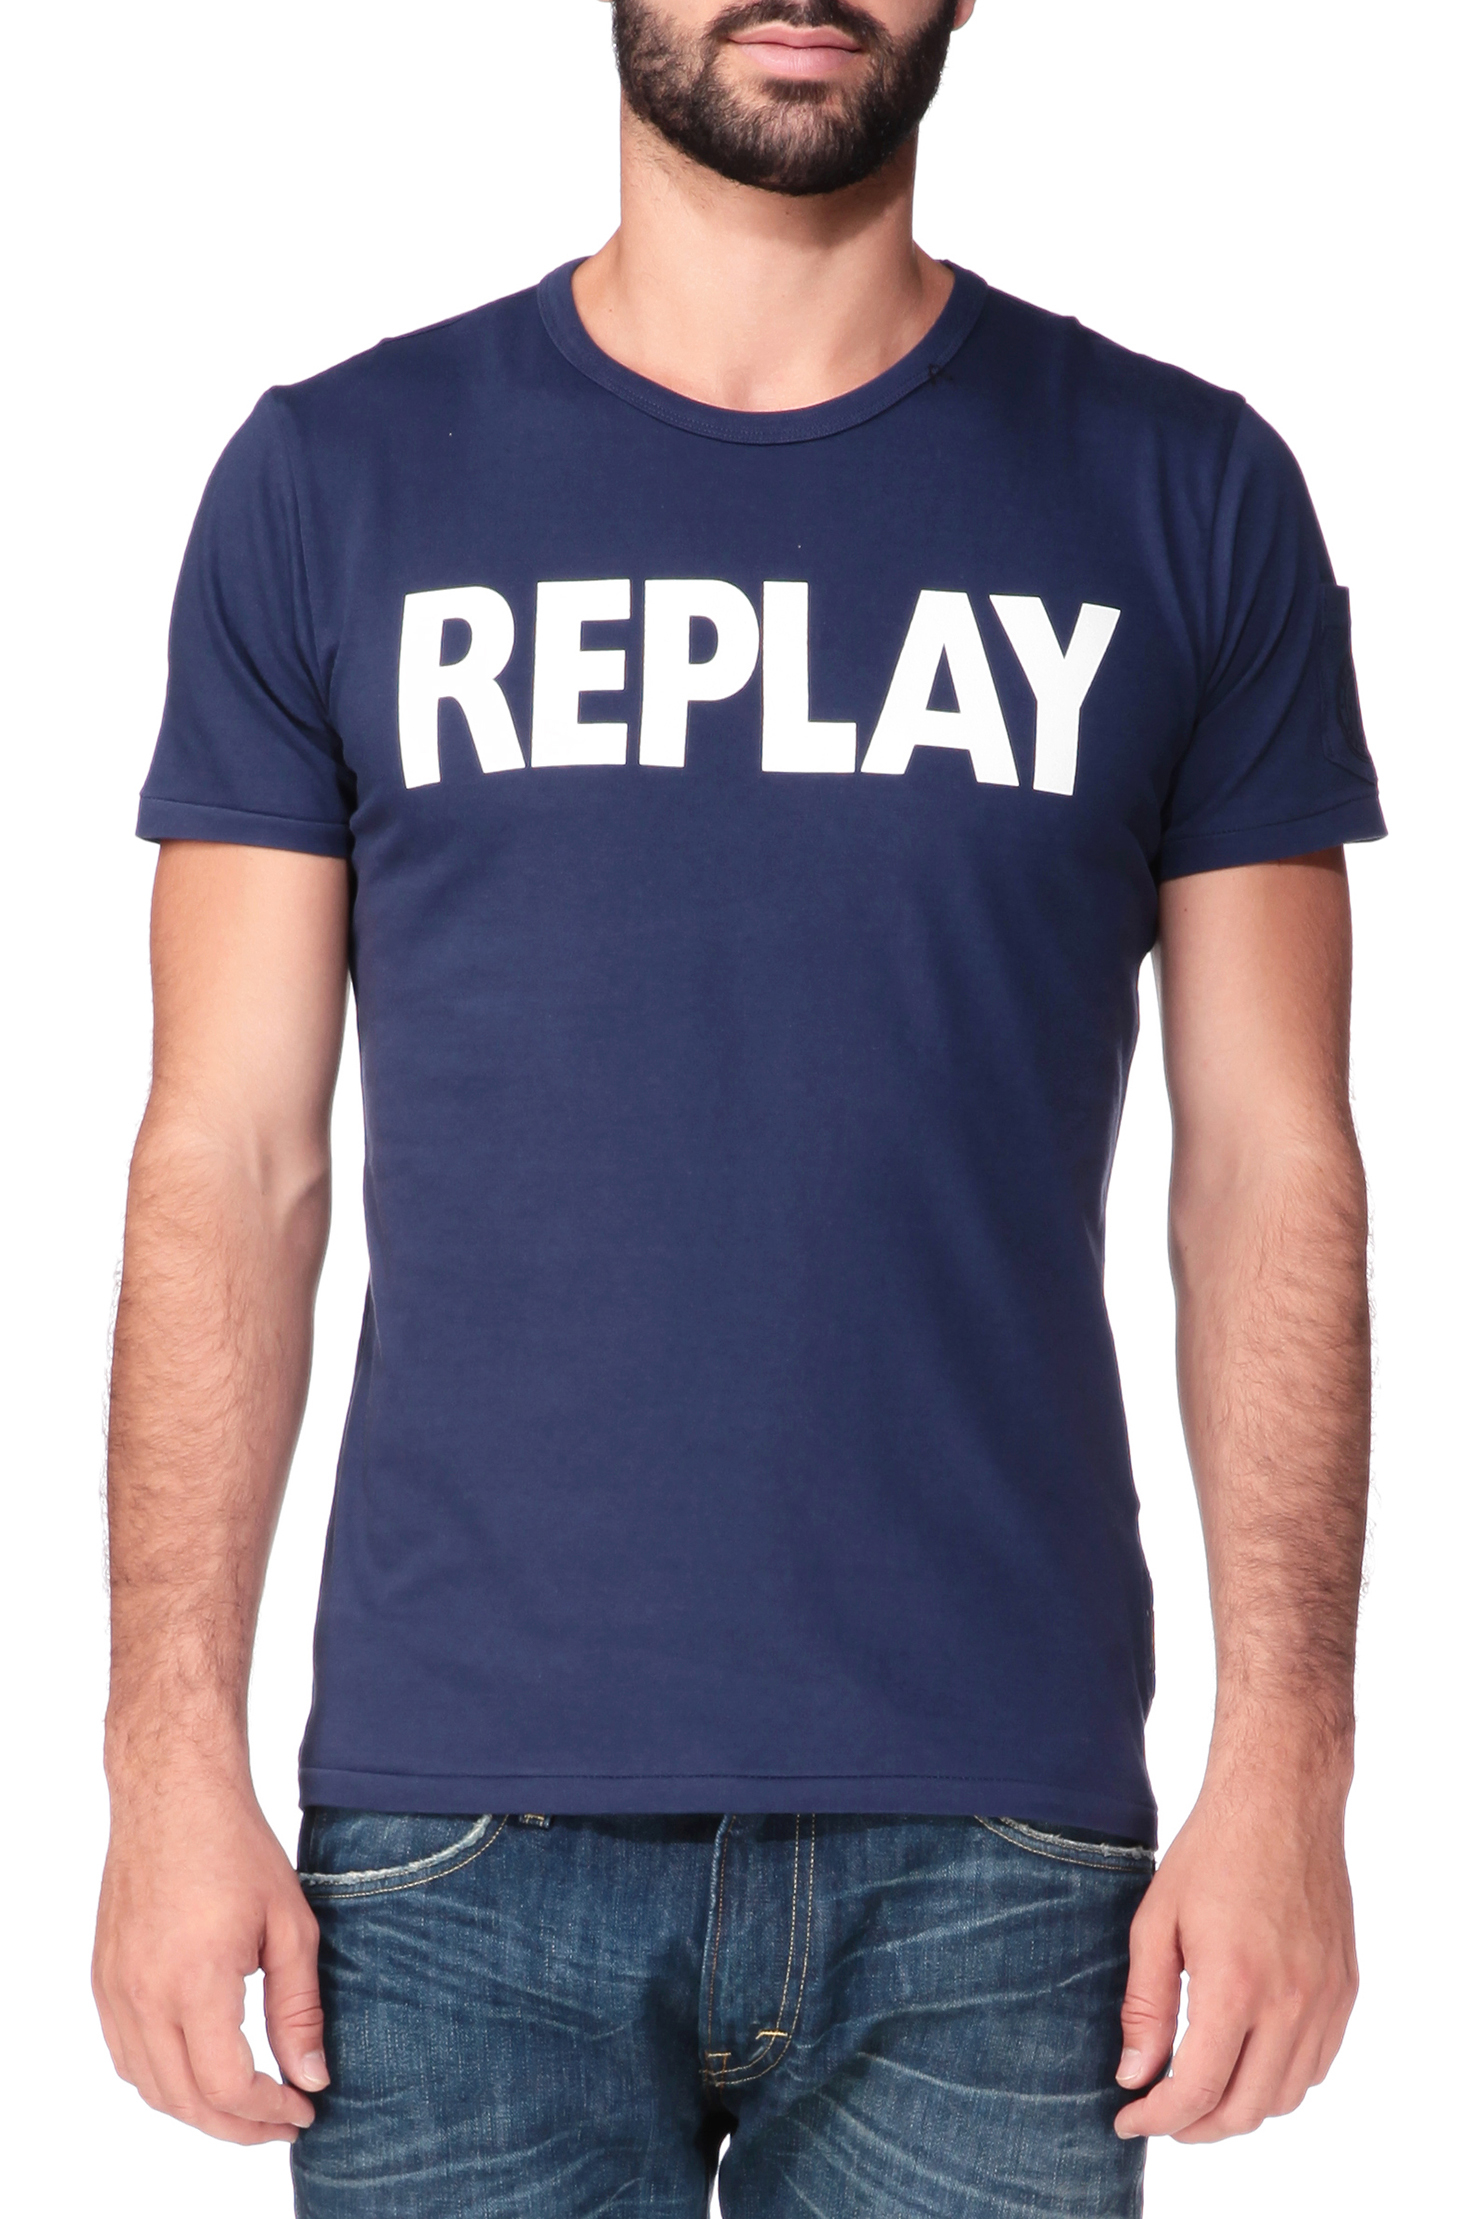 Replay Short Sleeve T Shirt In Blue For Men Lyst